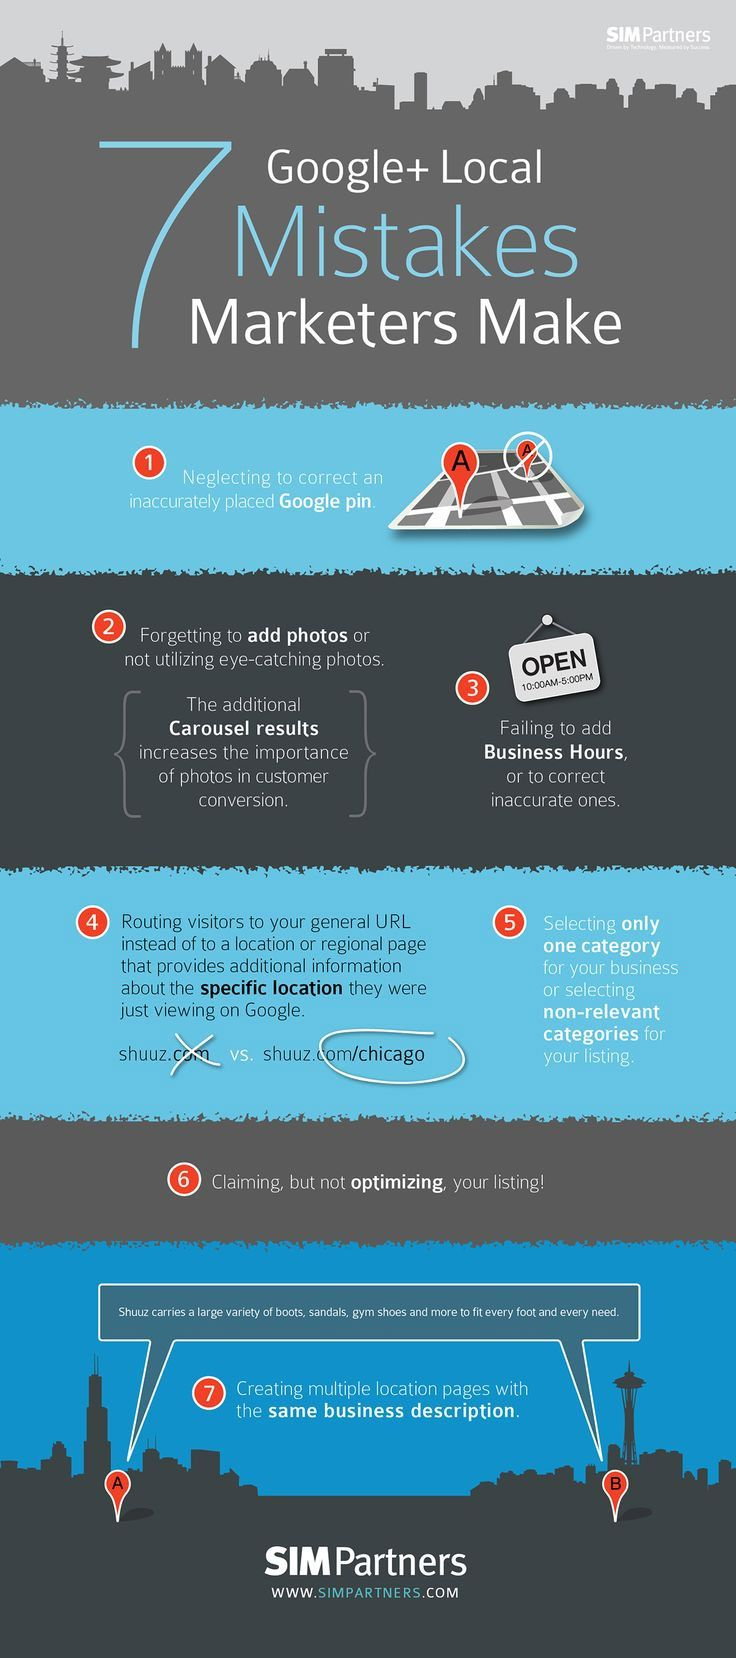 Google+ Local Marketing Mistakes - Webmag.co | Digital Resources for Net Professionals